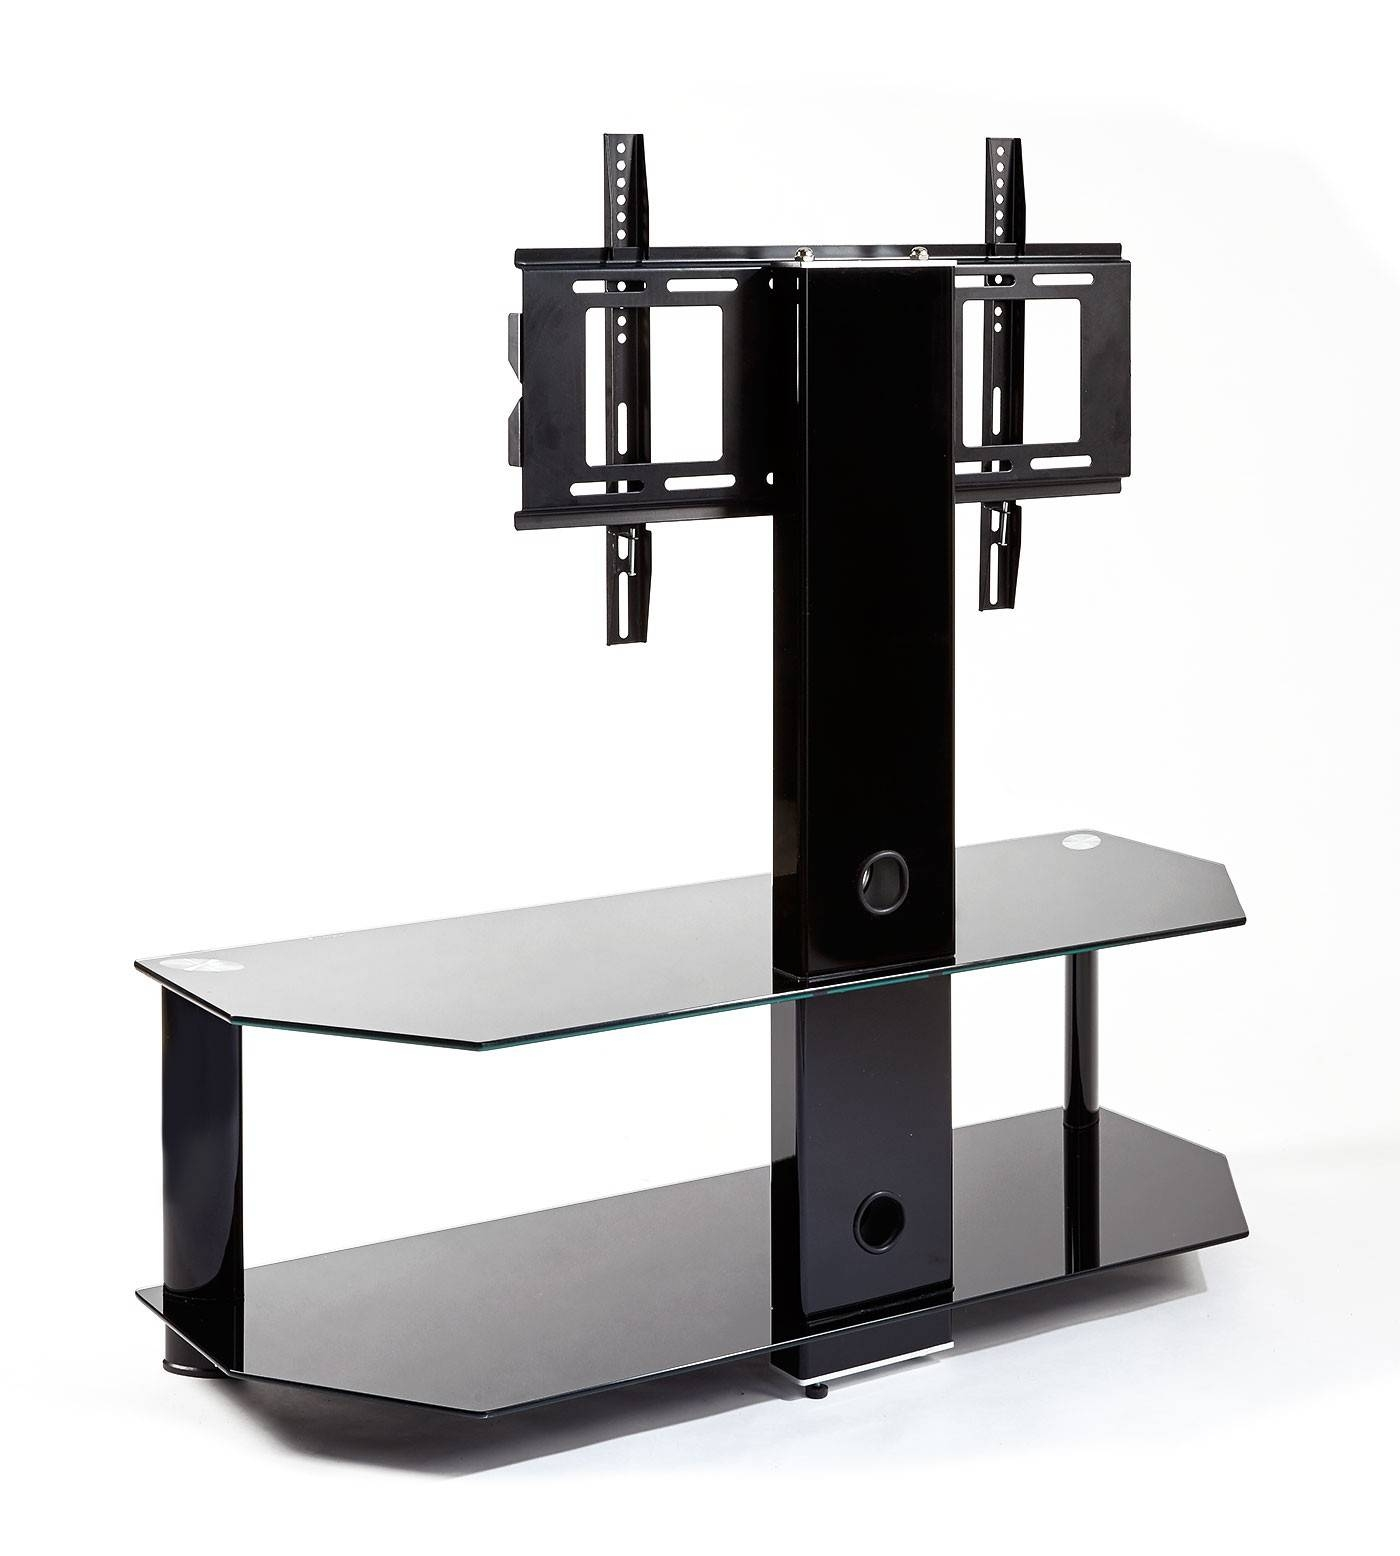 Black Glass Cantilever Tv Stand | Mmt-Cb110/2 with Cantilever Tv Stands (Image 7 of 15)